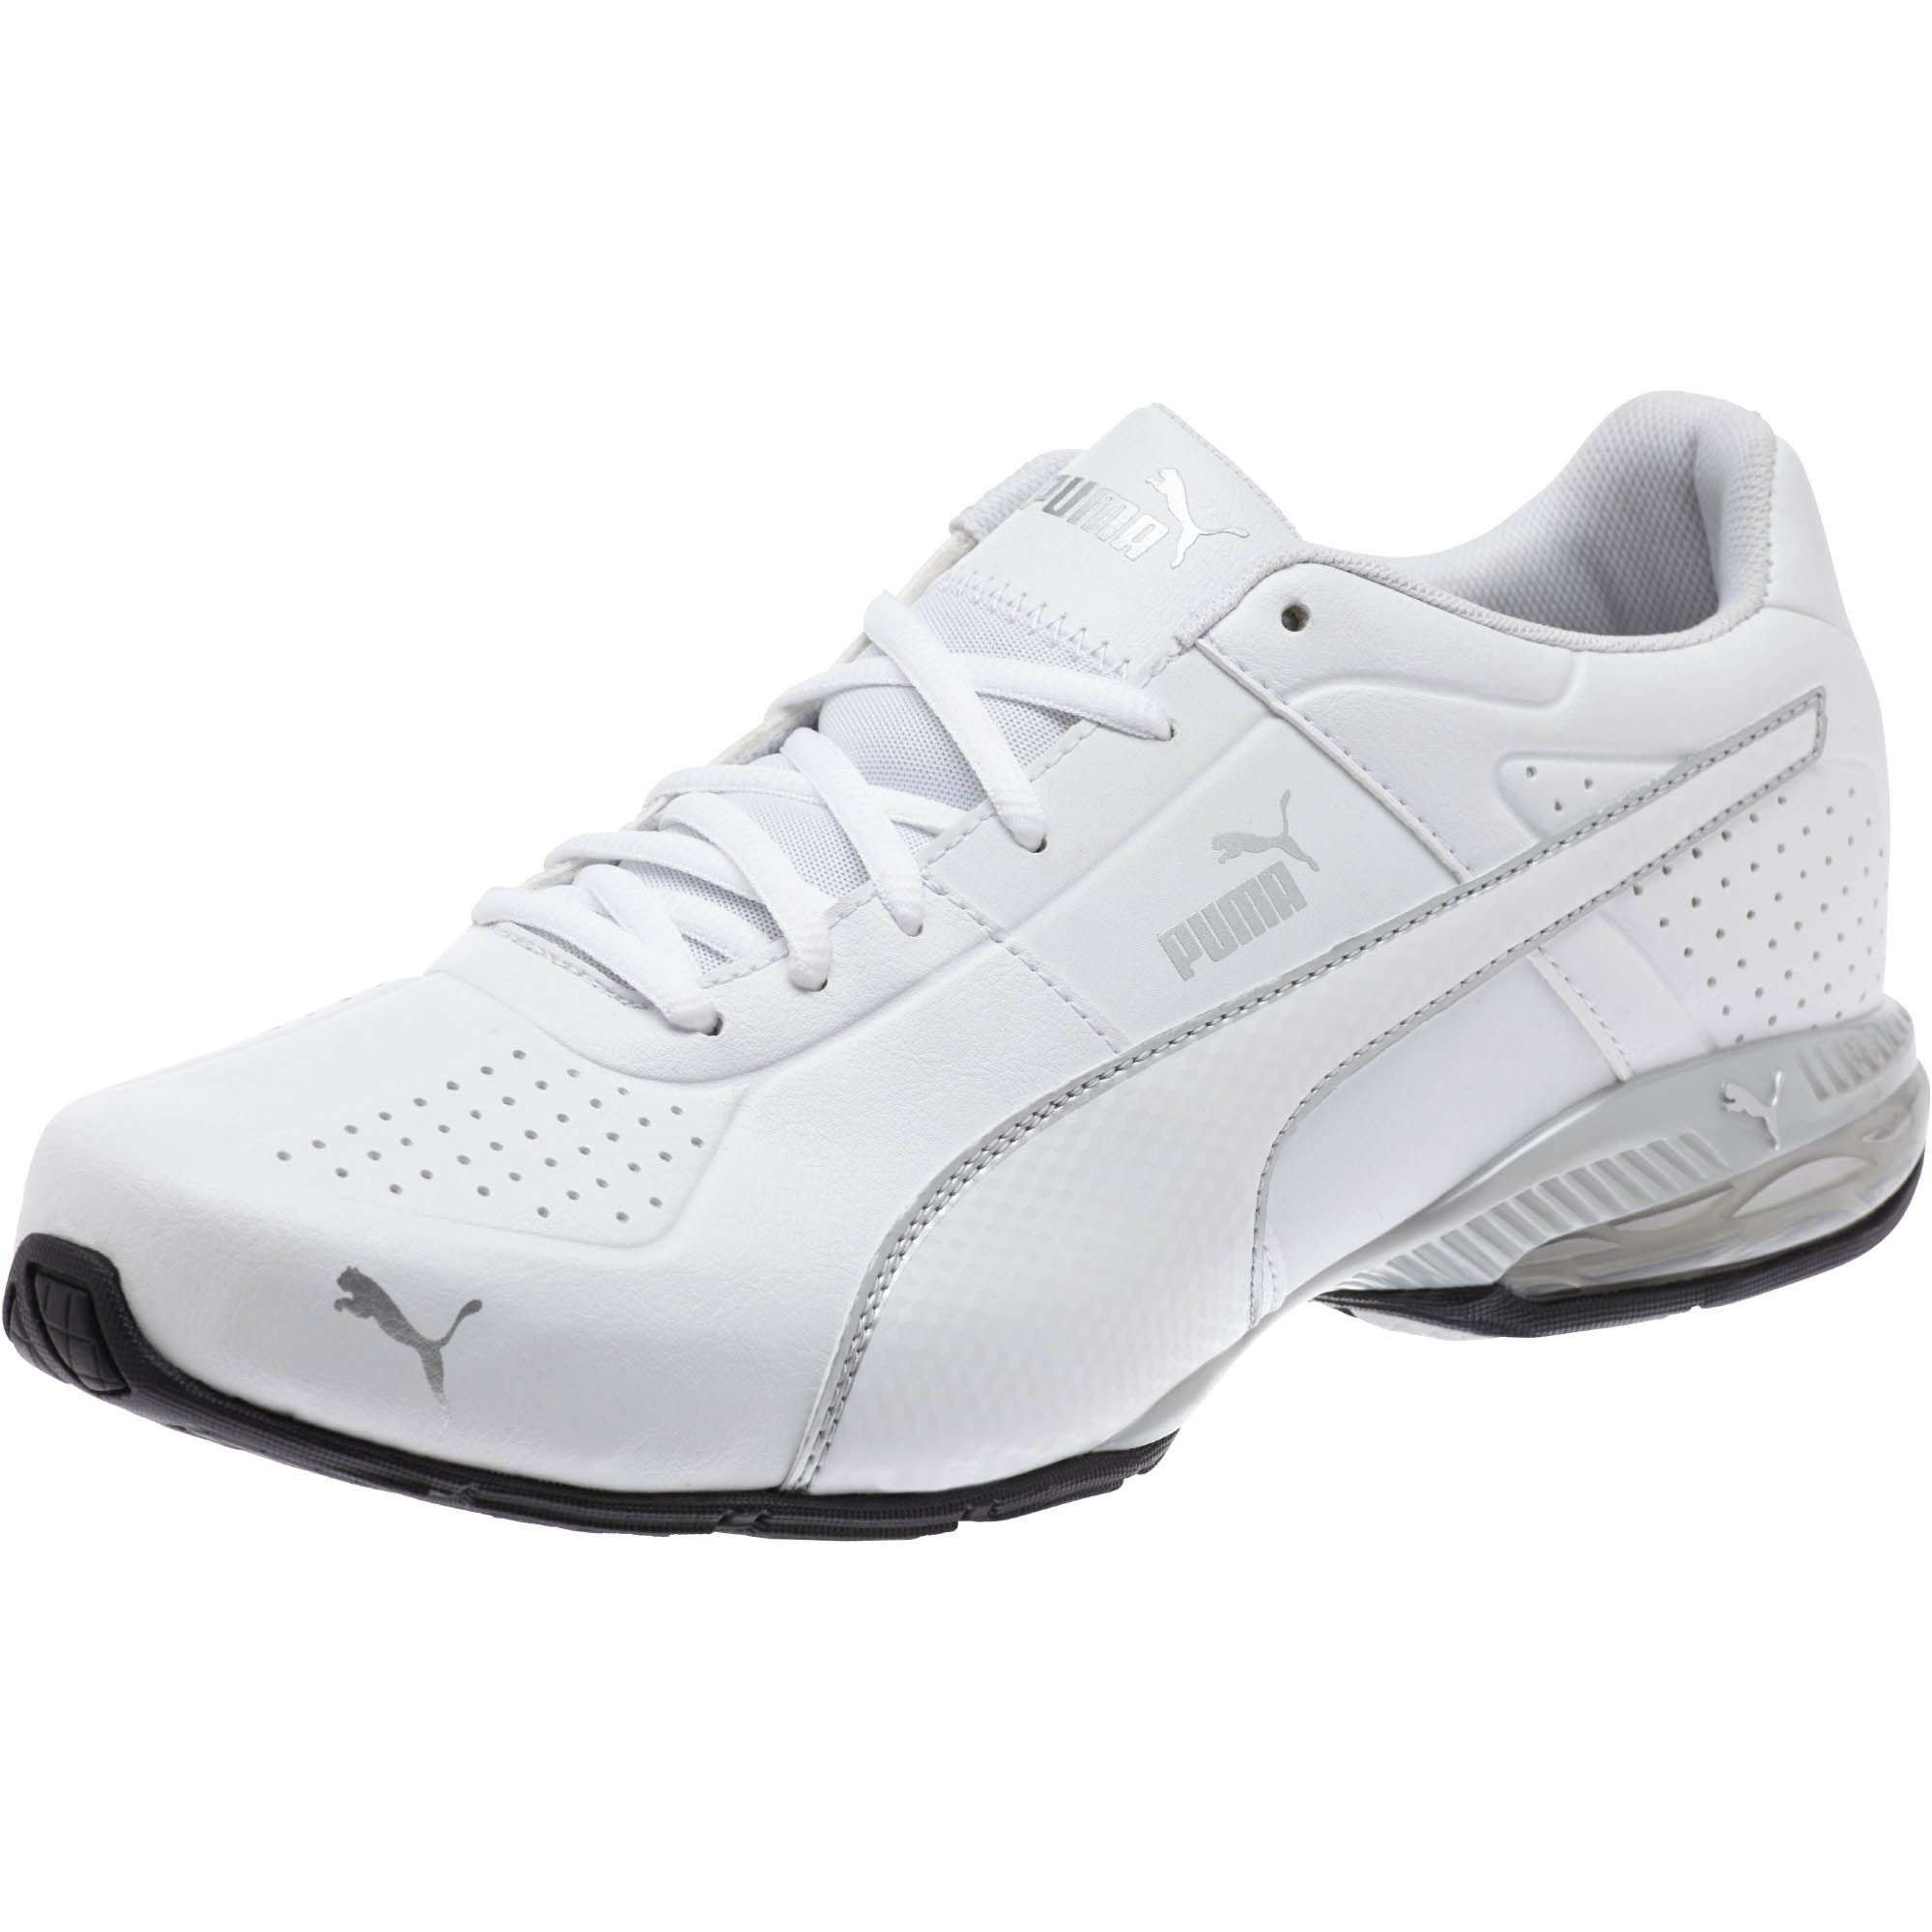 PUMA-Men-039-s-CELL-Surin-2-FM-Running-Shoes thumbnail 11